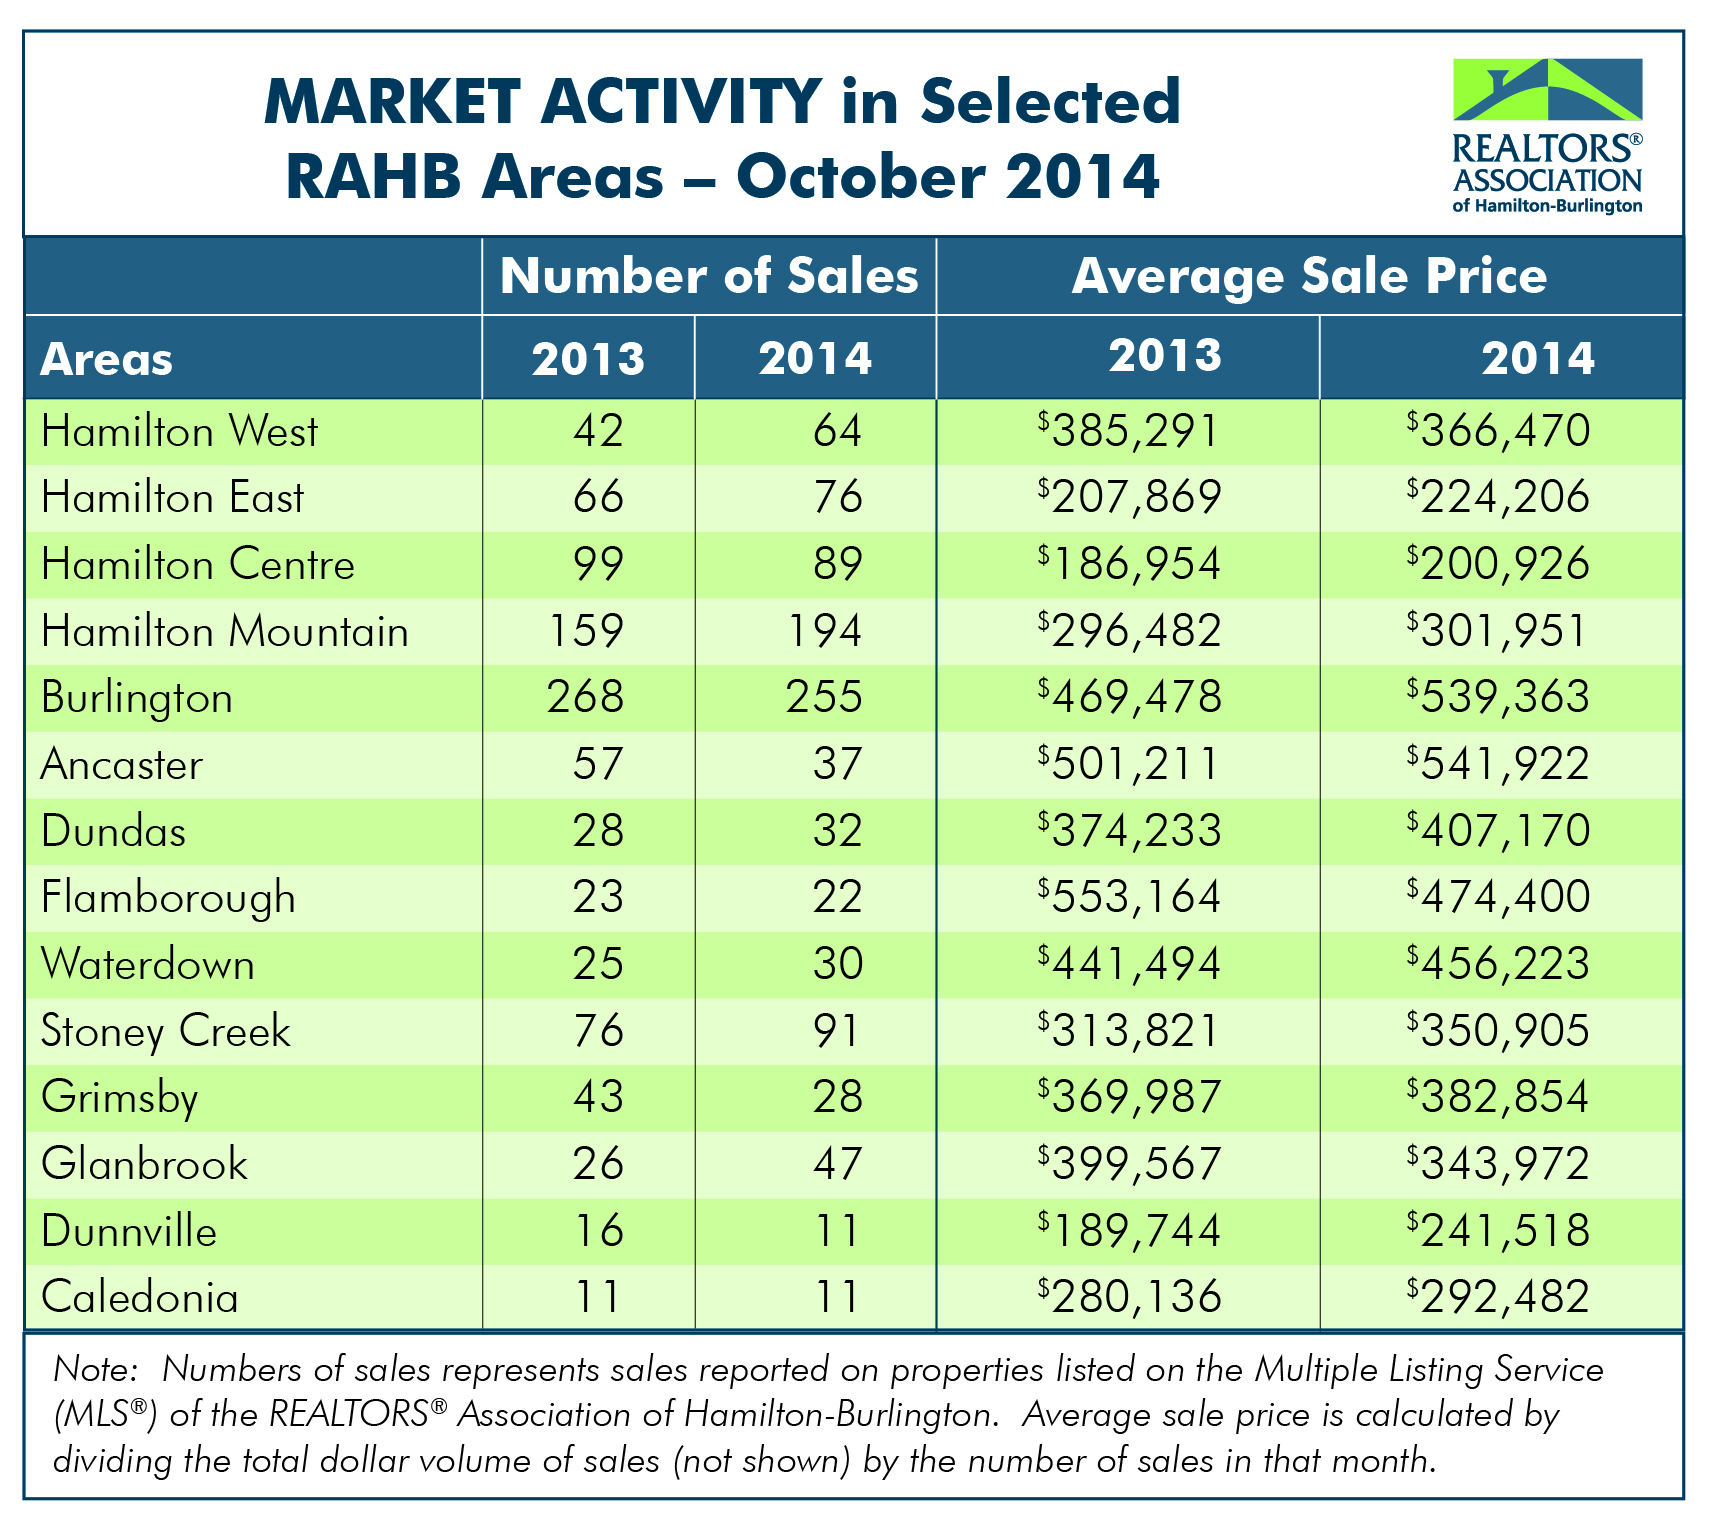 RAHB Market Activity for Oct